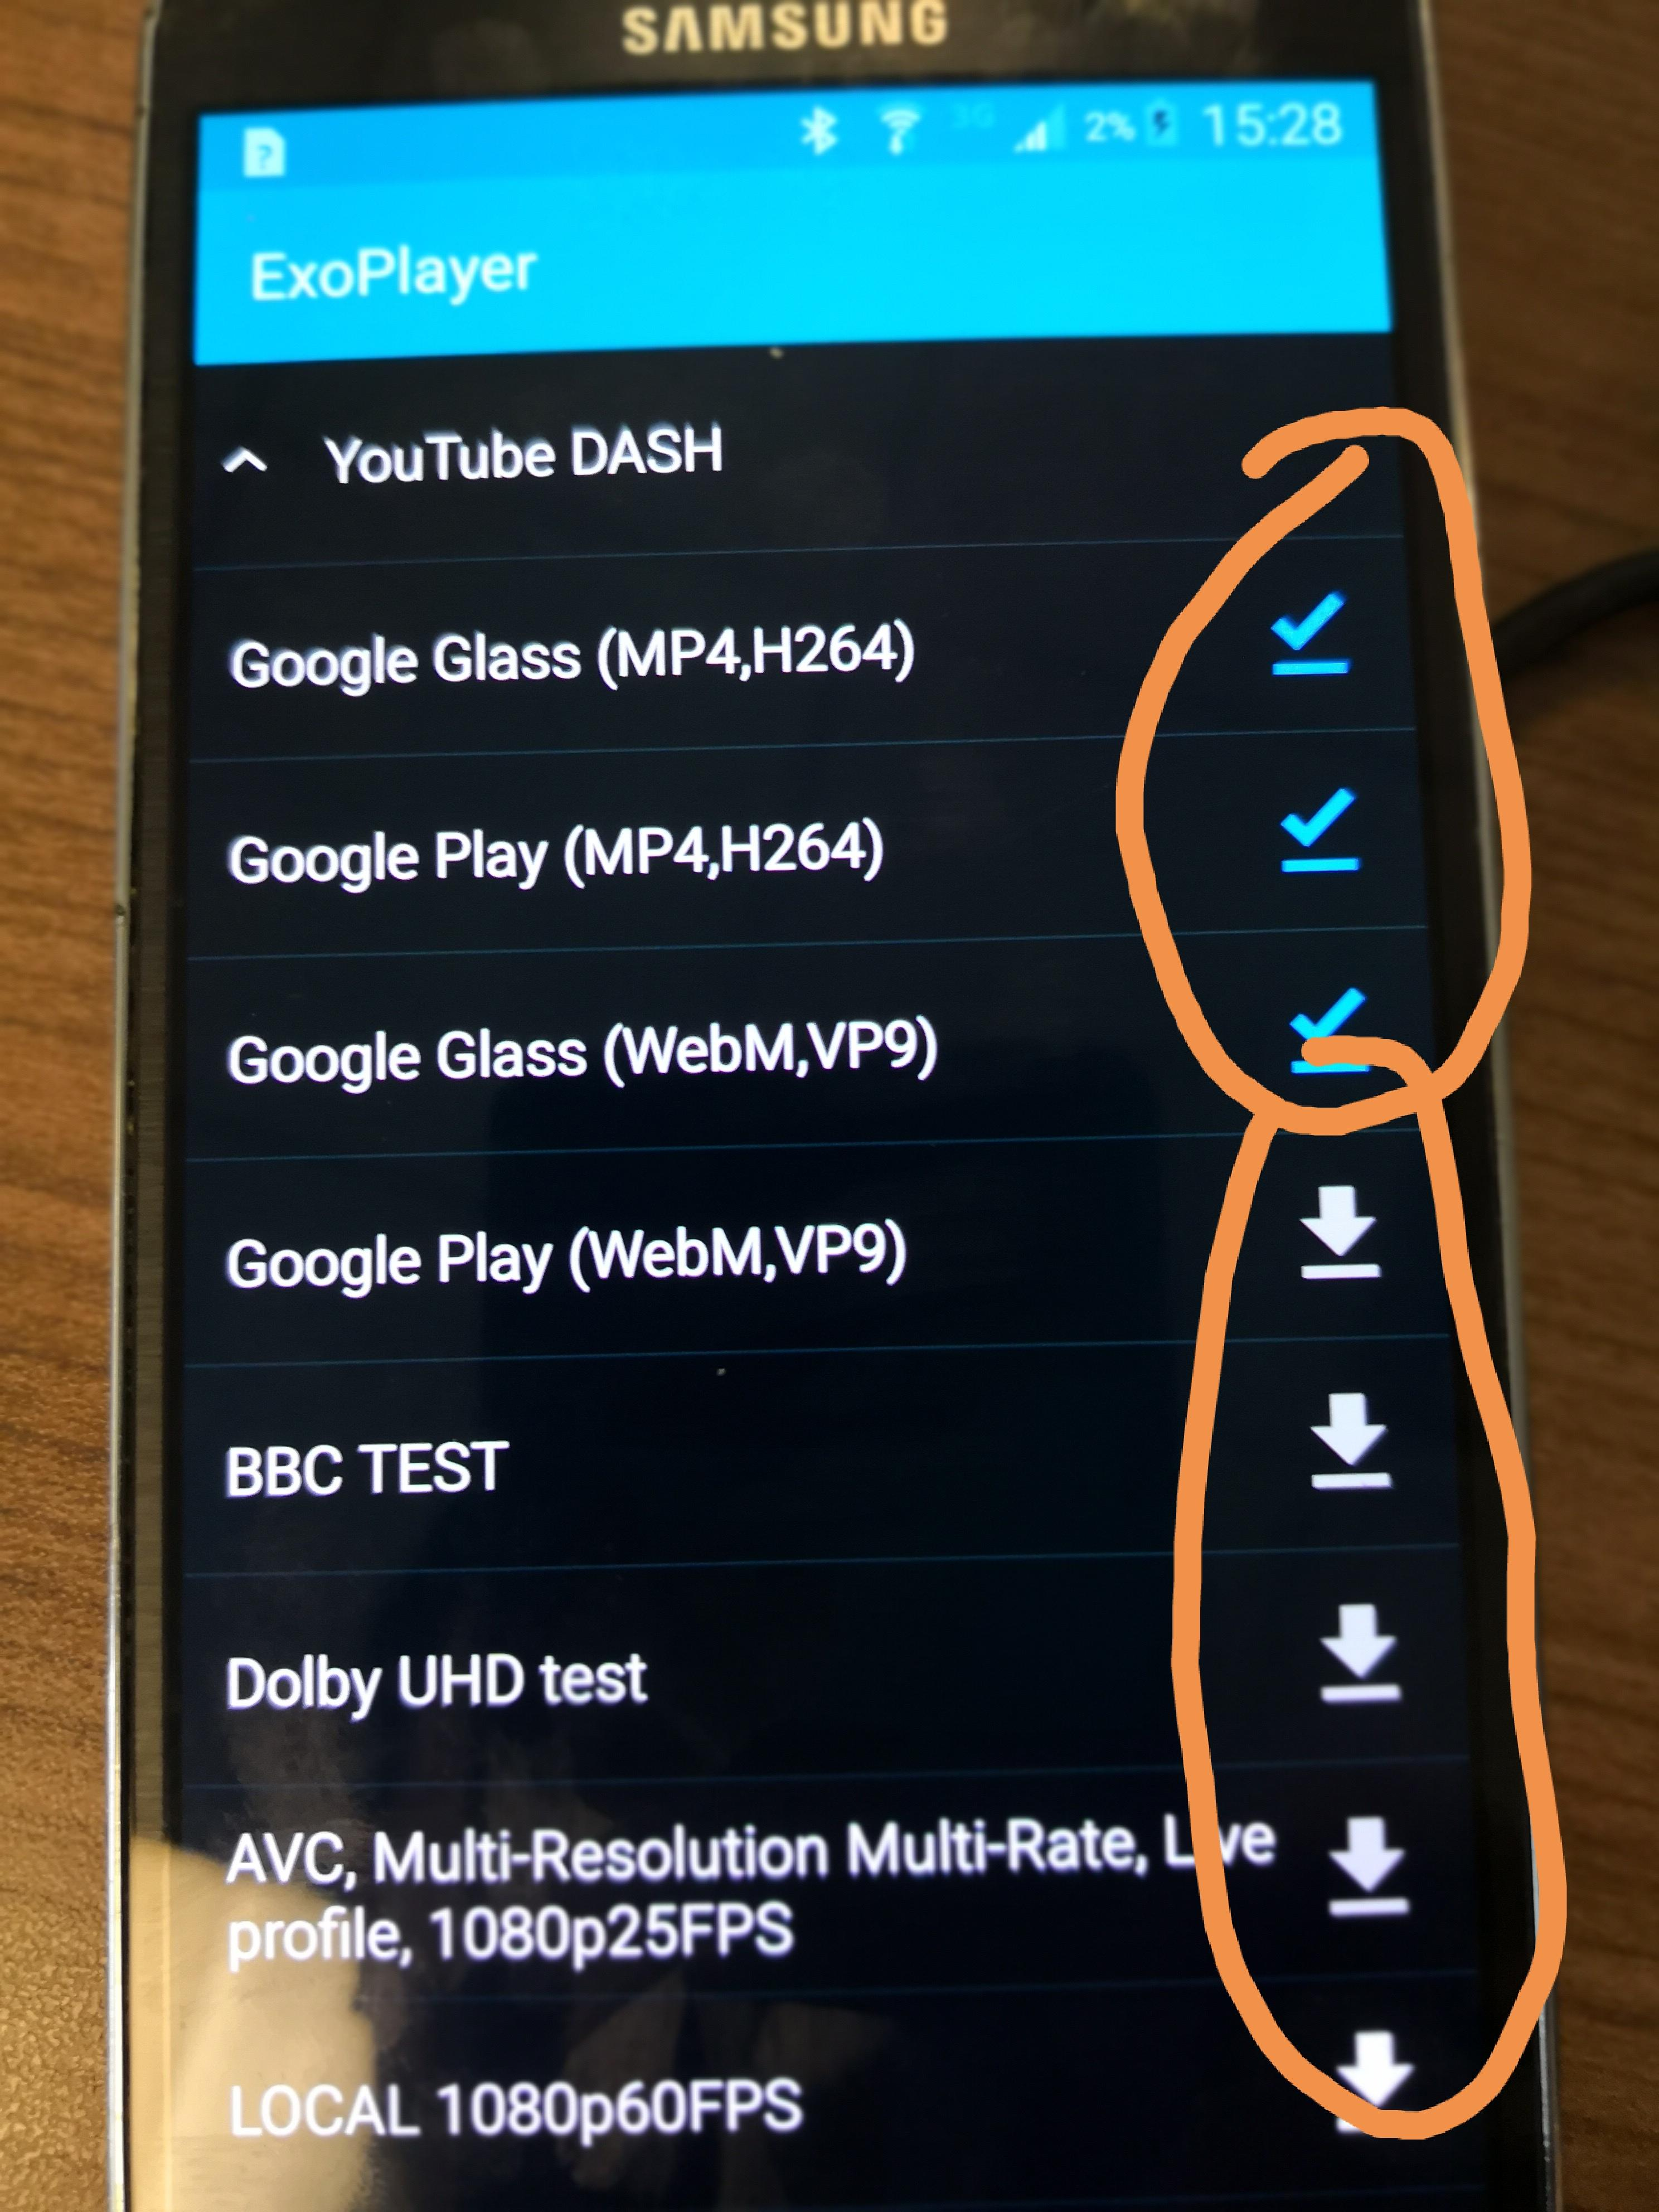 Question: is it possible to play a video while also downloading it